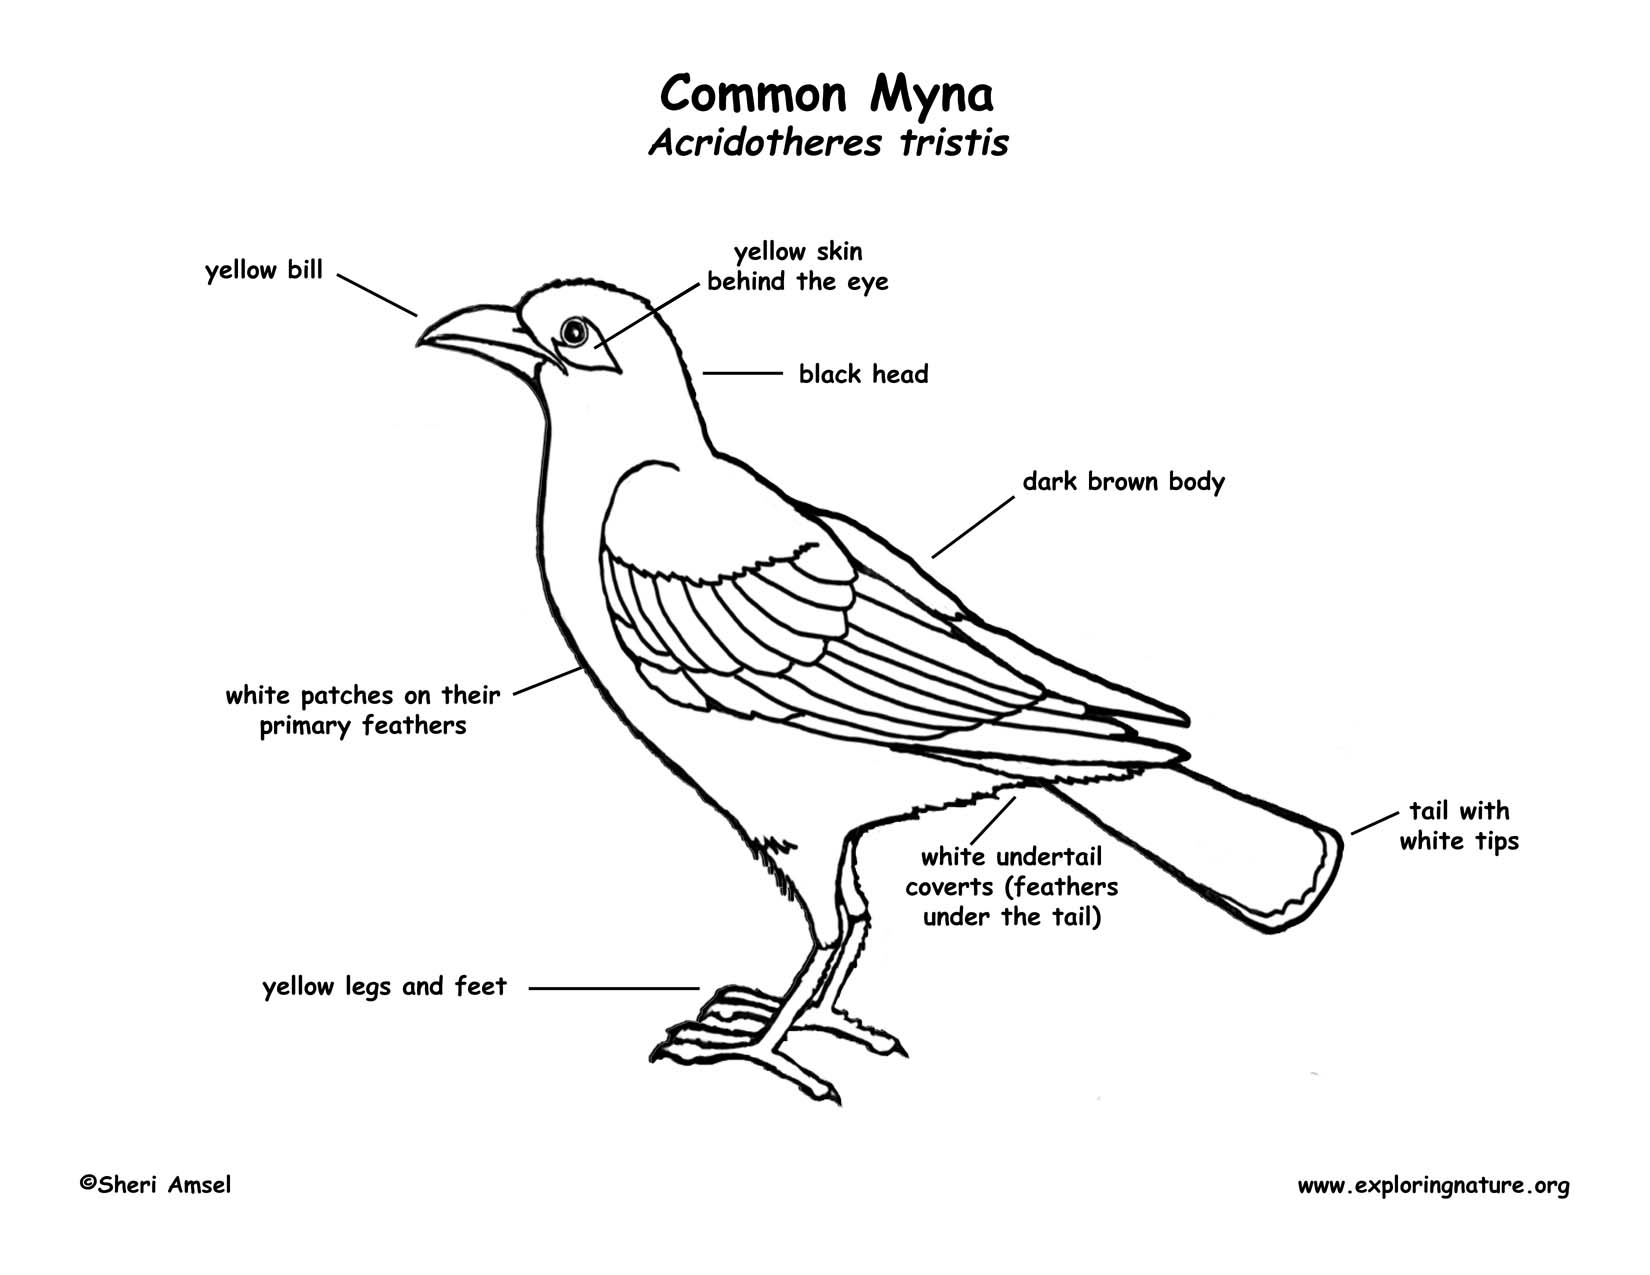 The Common Myna